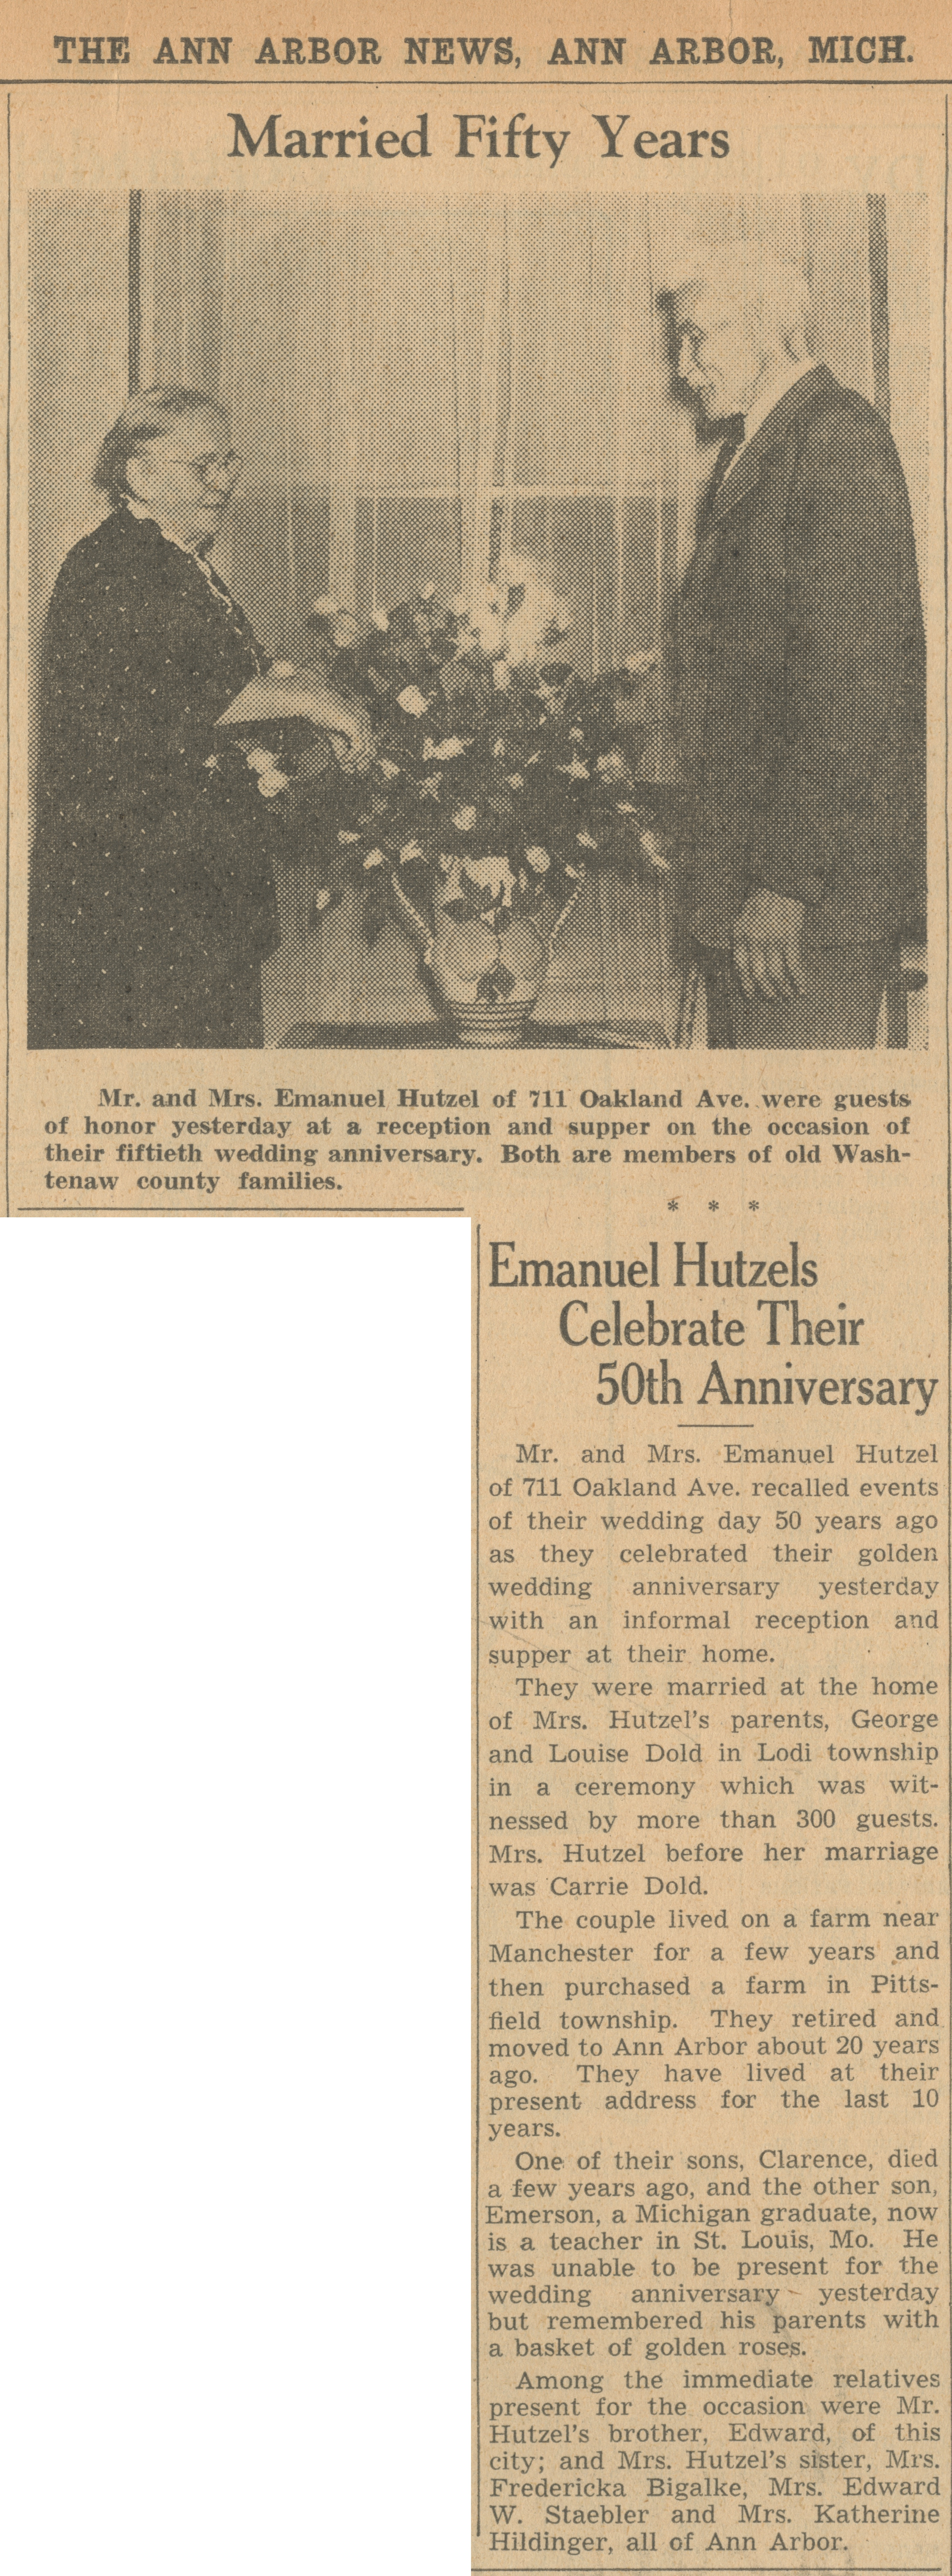 Emanuel Hutzels Celebrate Their 50th Anniversary image